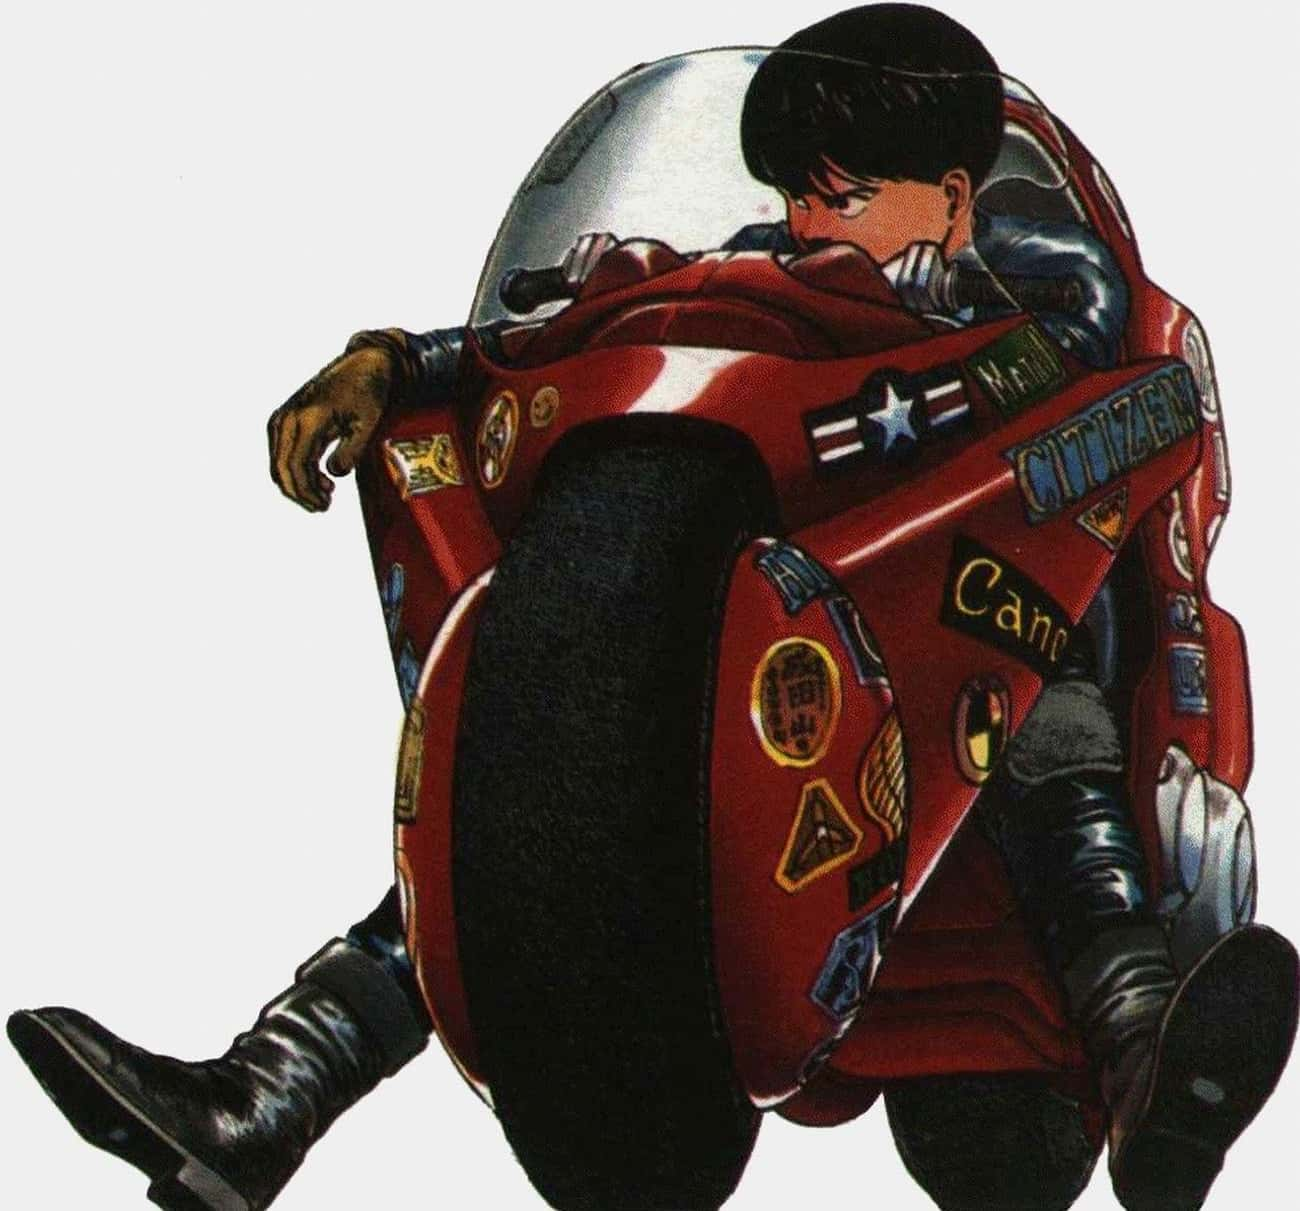 Kaneda Isn't The Most Important Character In The Manga